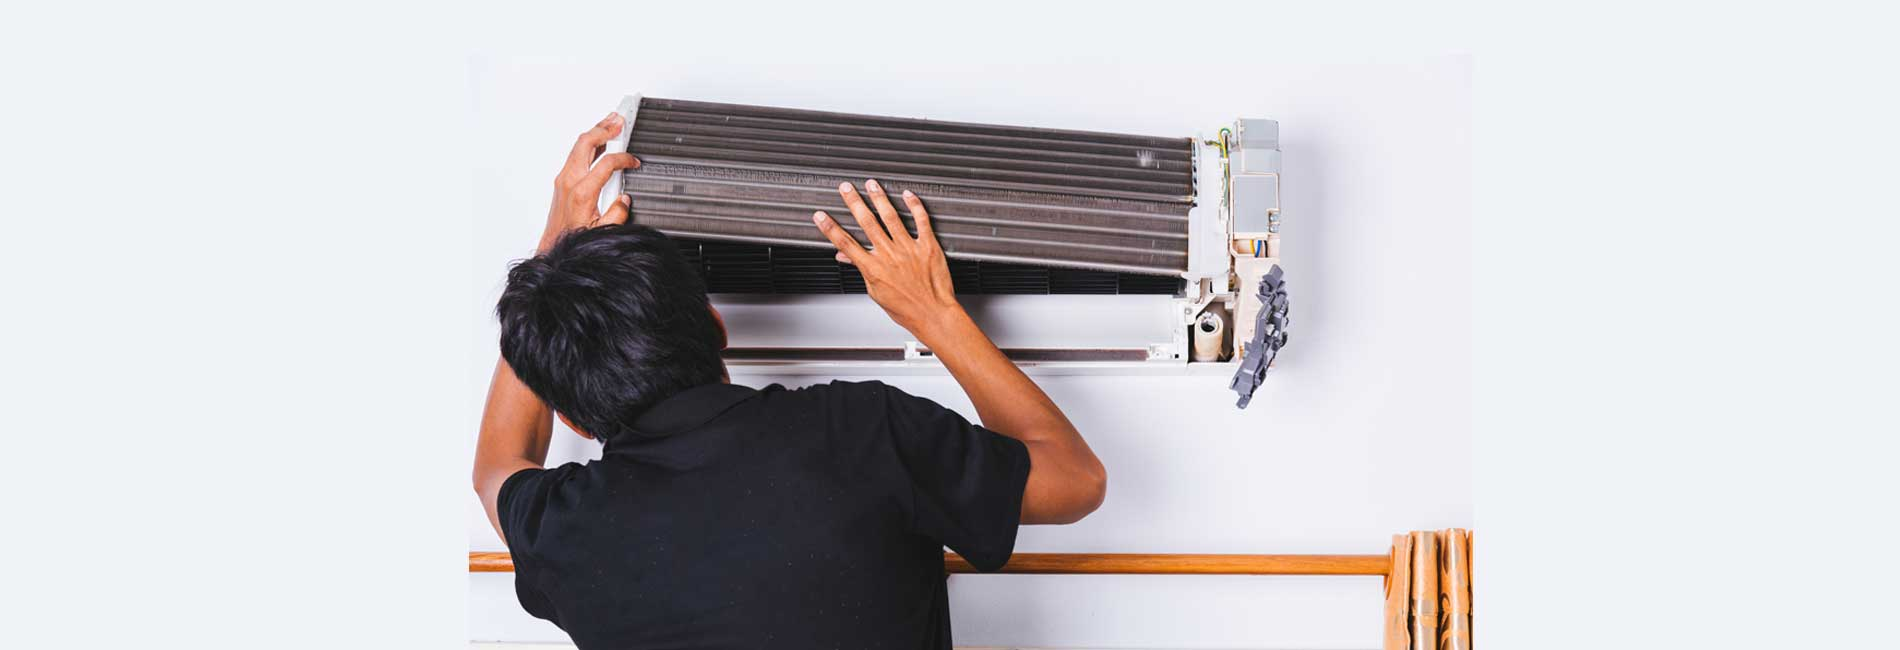 Godrej AC Repair in Kattupakkam